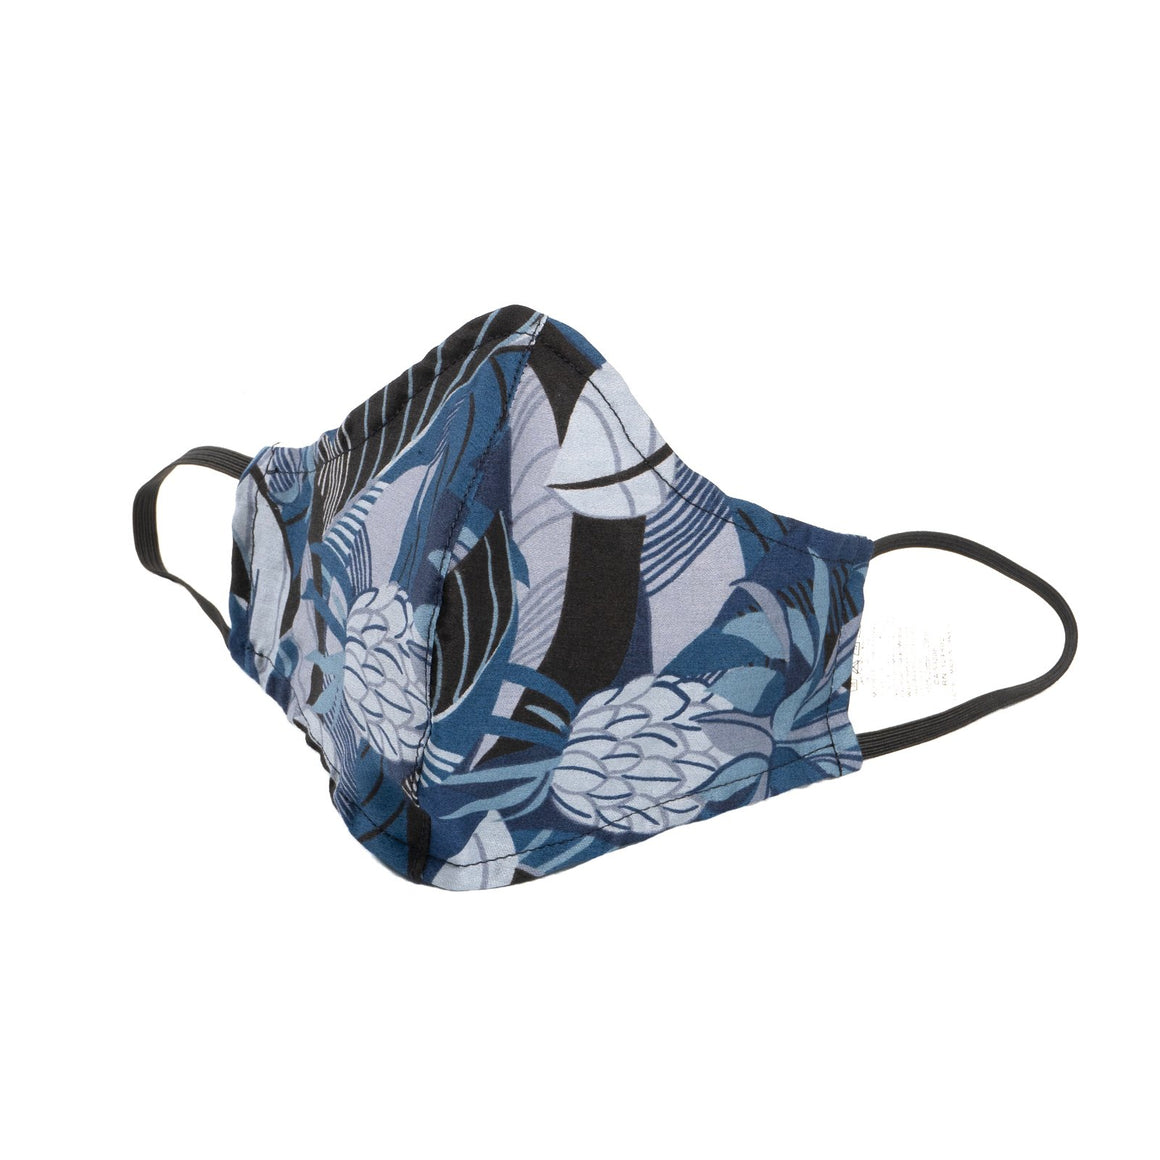 Adult Protective Face Mask - Blue Tropical Print